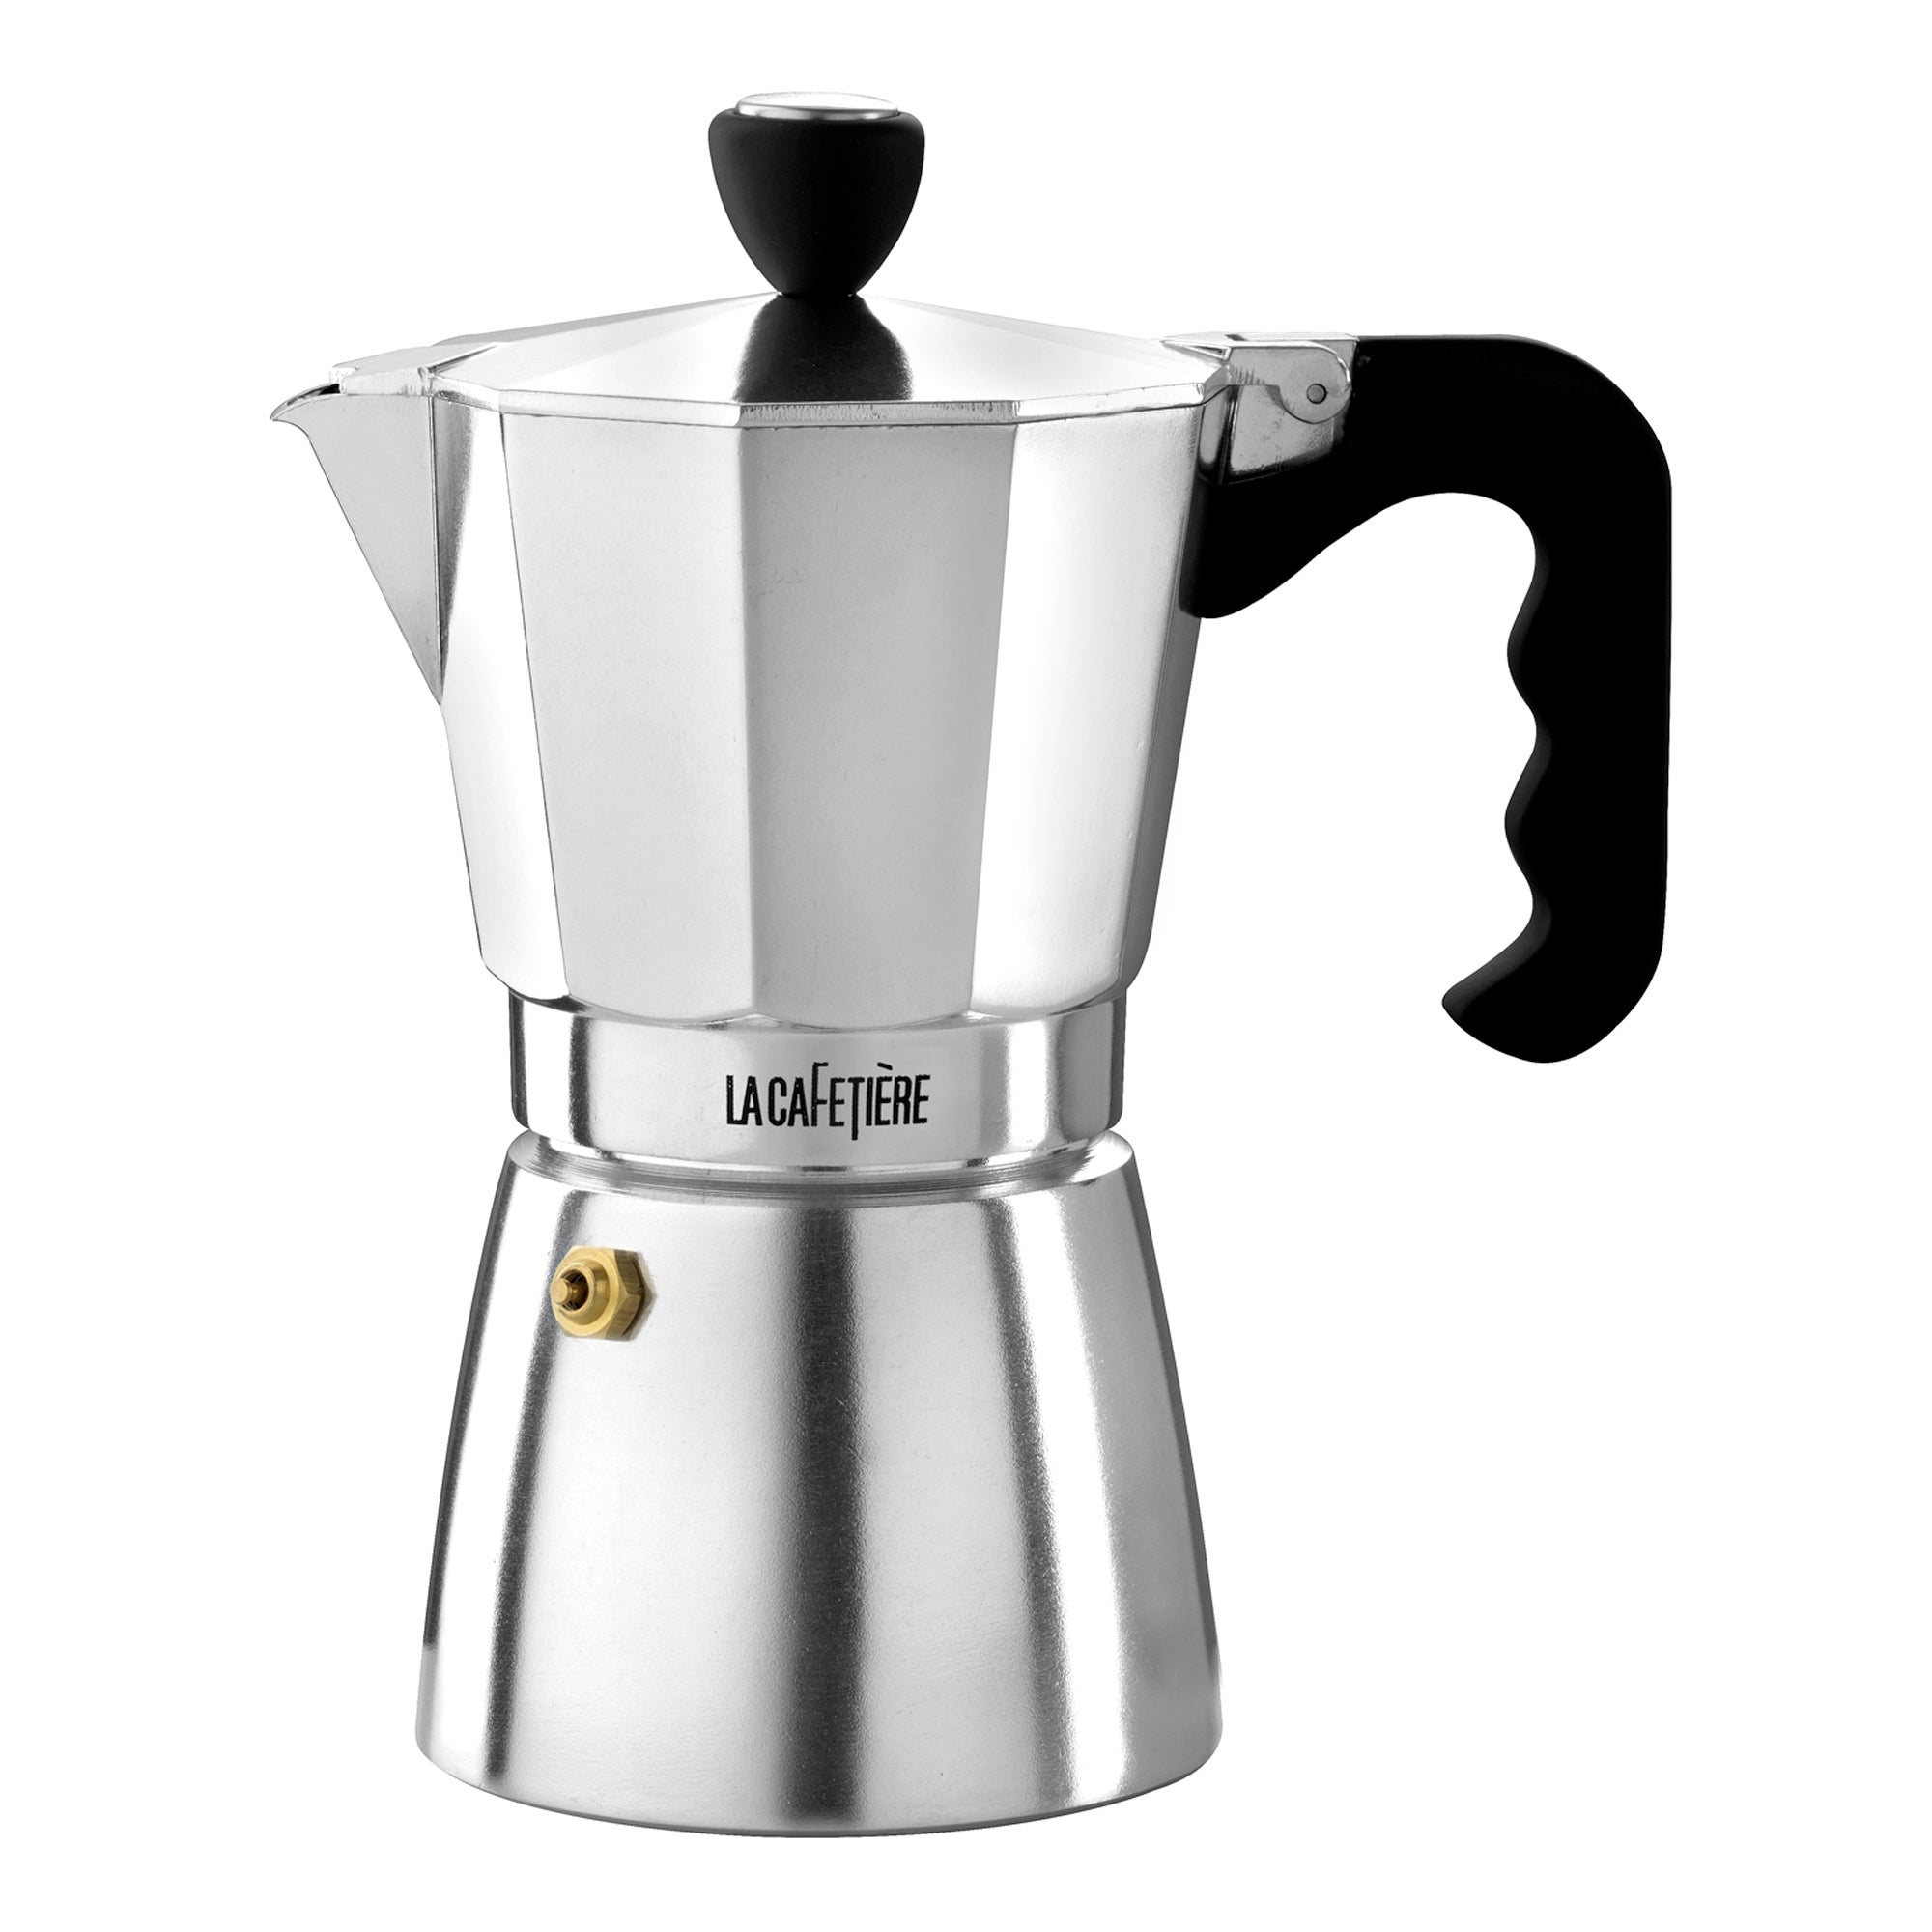 Photo of La cafetiere silver 6 cup stove top coffee maker silver